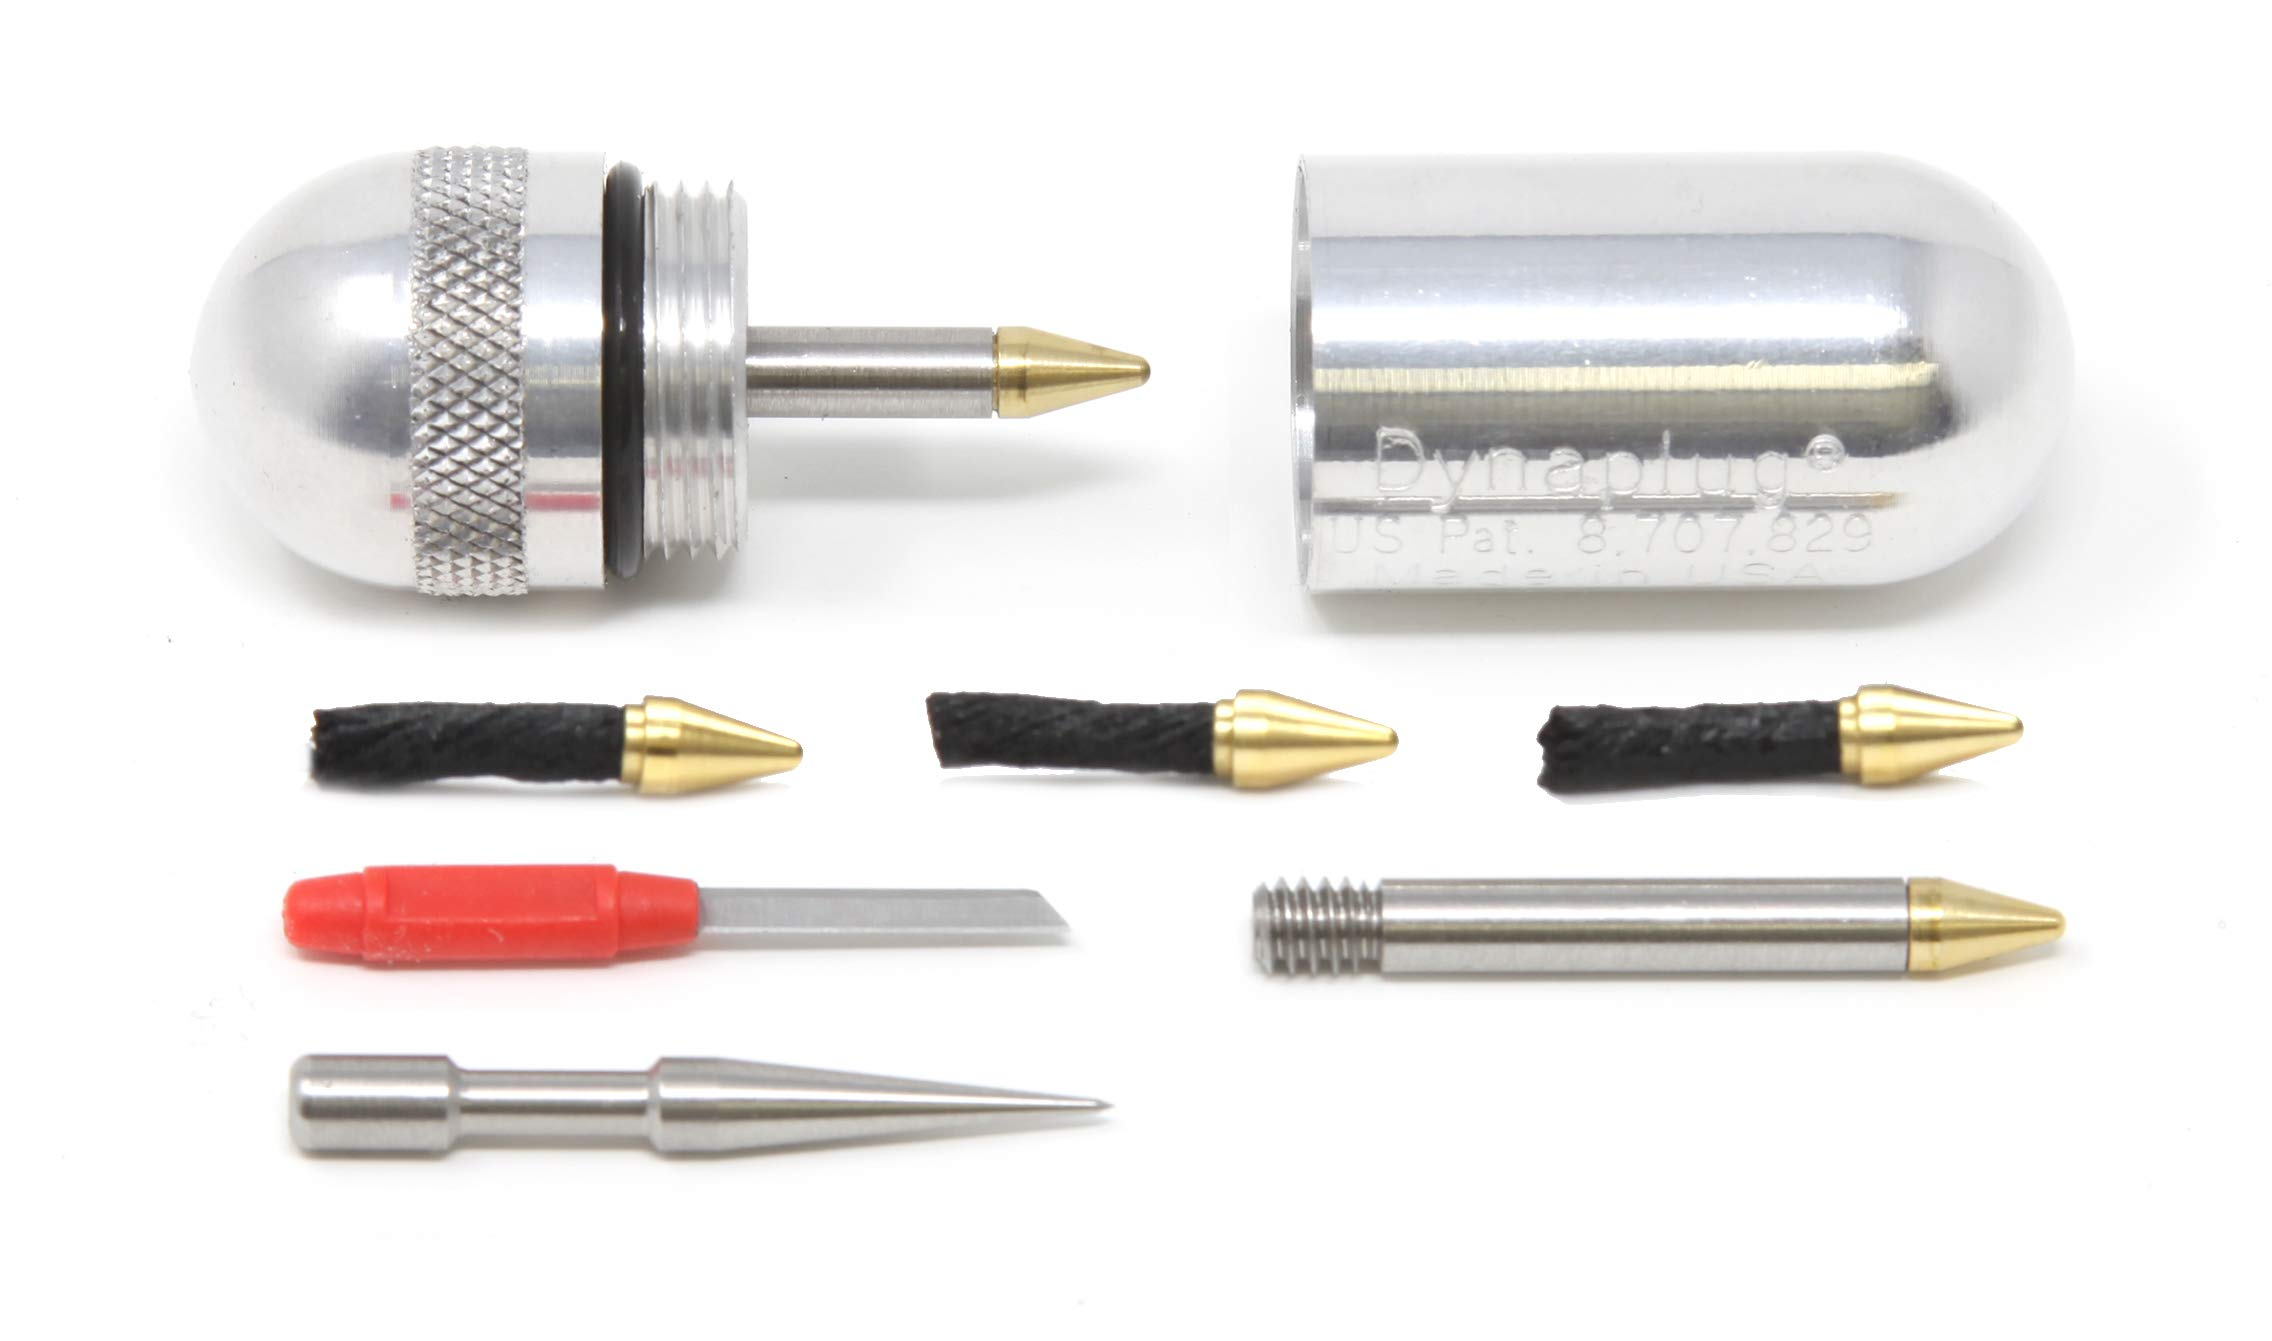 Dynaplug Micro PRO with Extra Package of Bullet Plugs by Dynaplug